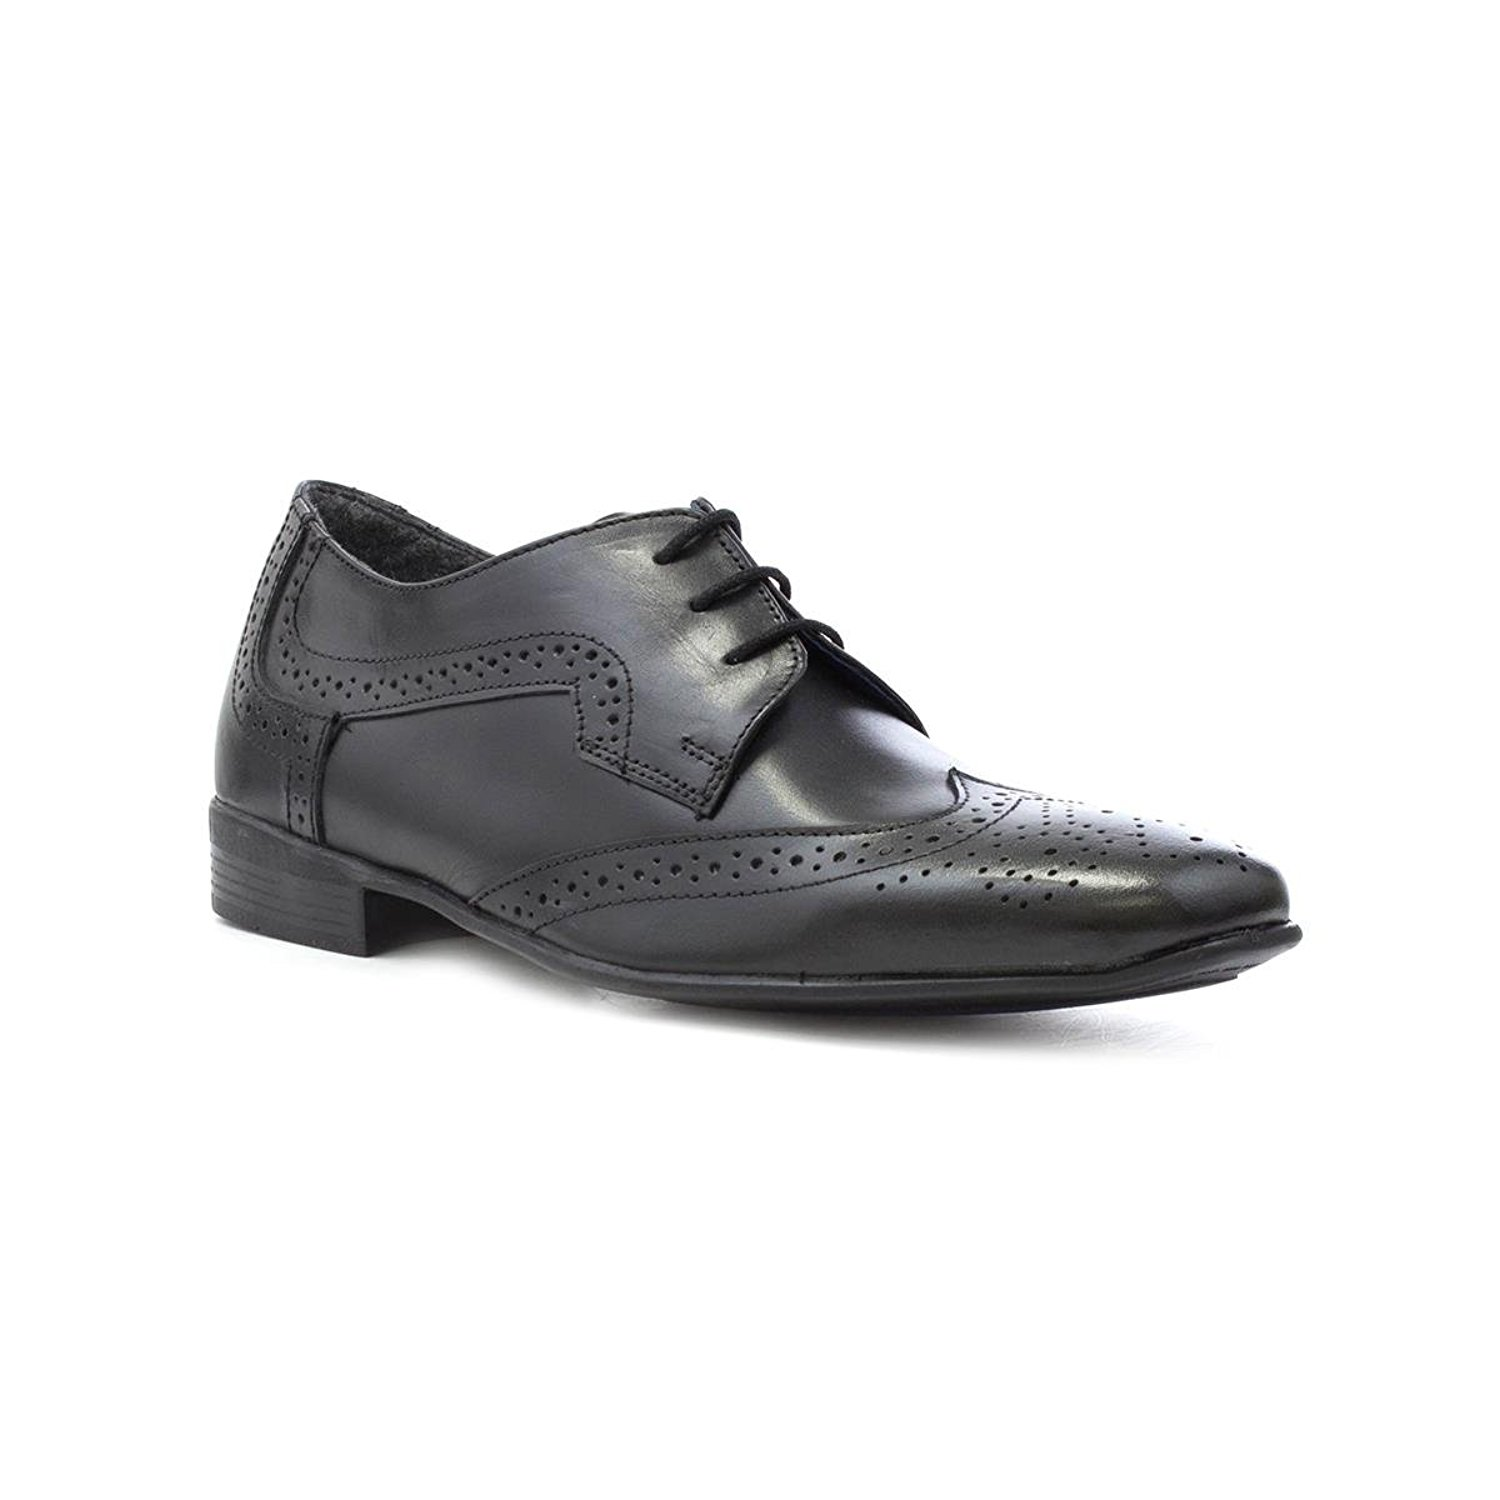 Frank James Mens Black Leather Lace up Brogue Shoe